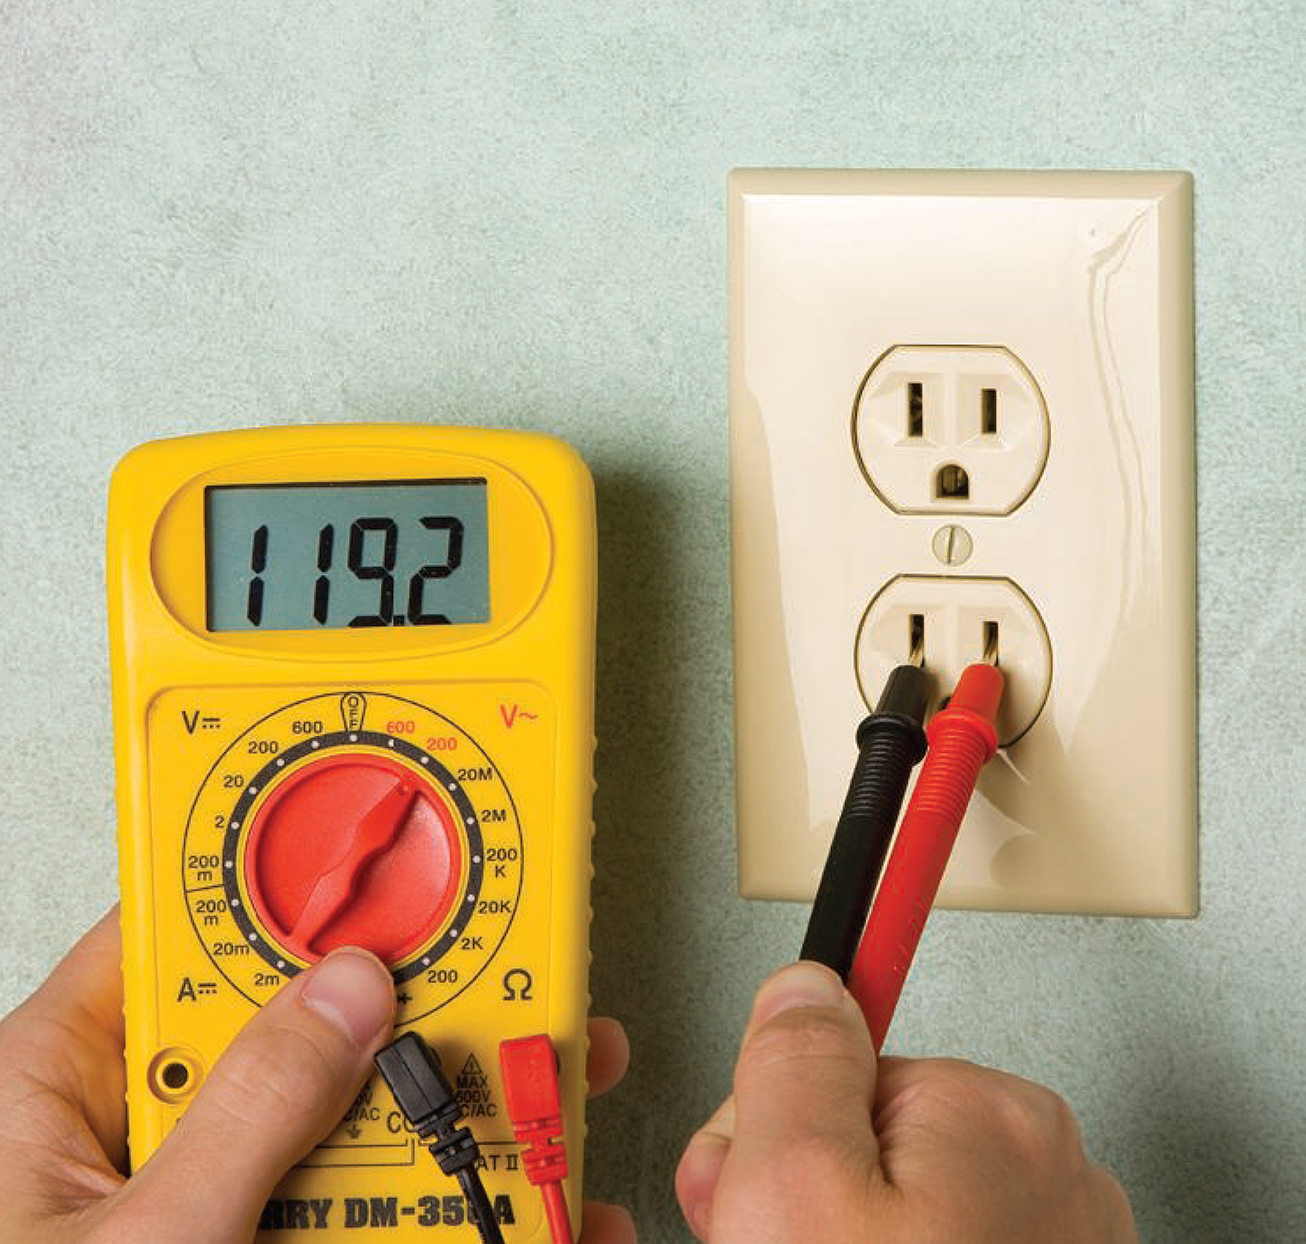 home-electricial-safity-Check-the-Voltage-of-Outlets 5 Things You Can Do to Check Your Electrical Safety at Home